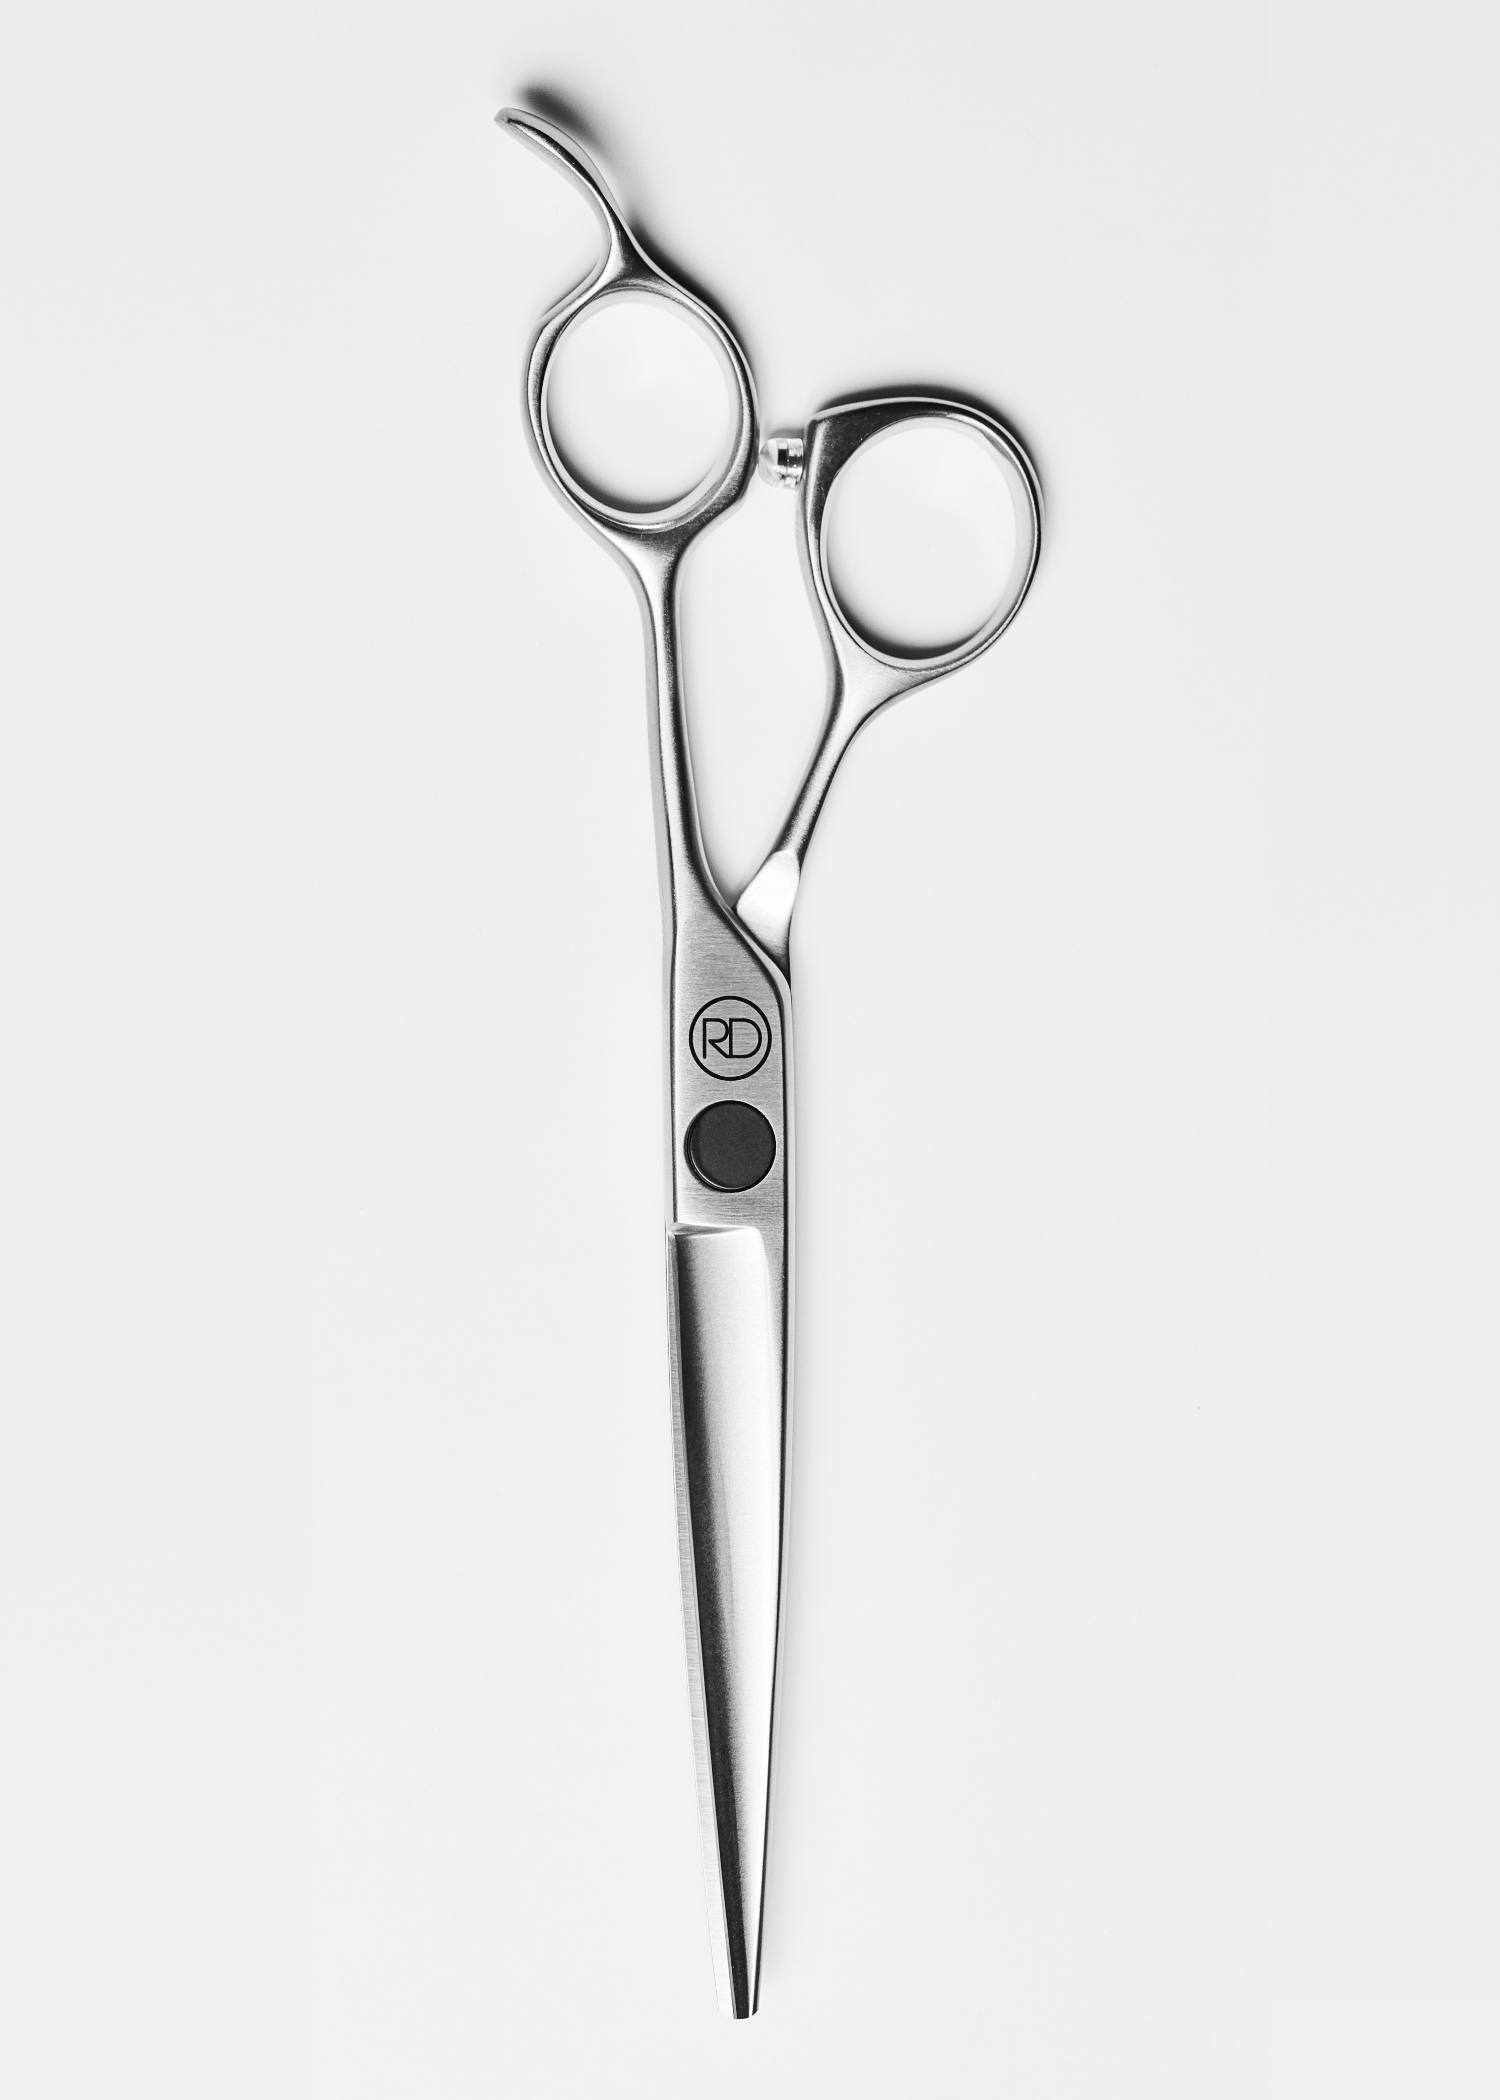 INFINITE - RHODE.PRO- haircutting - scissors - shears